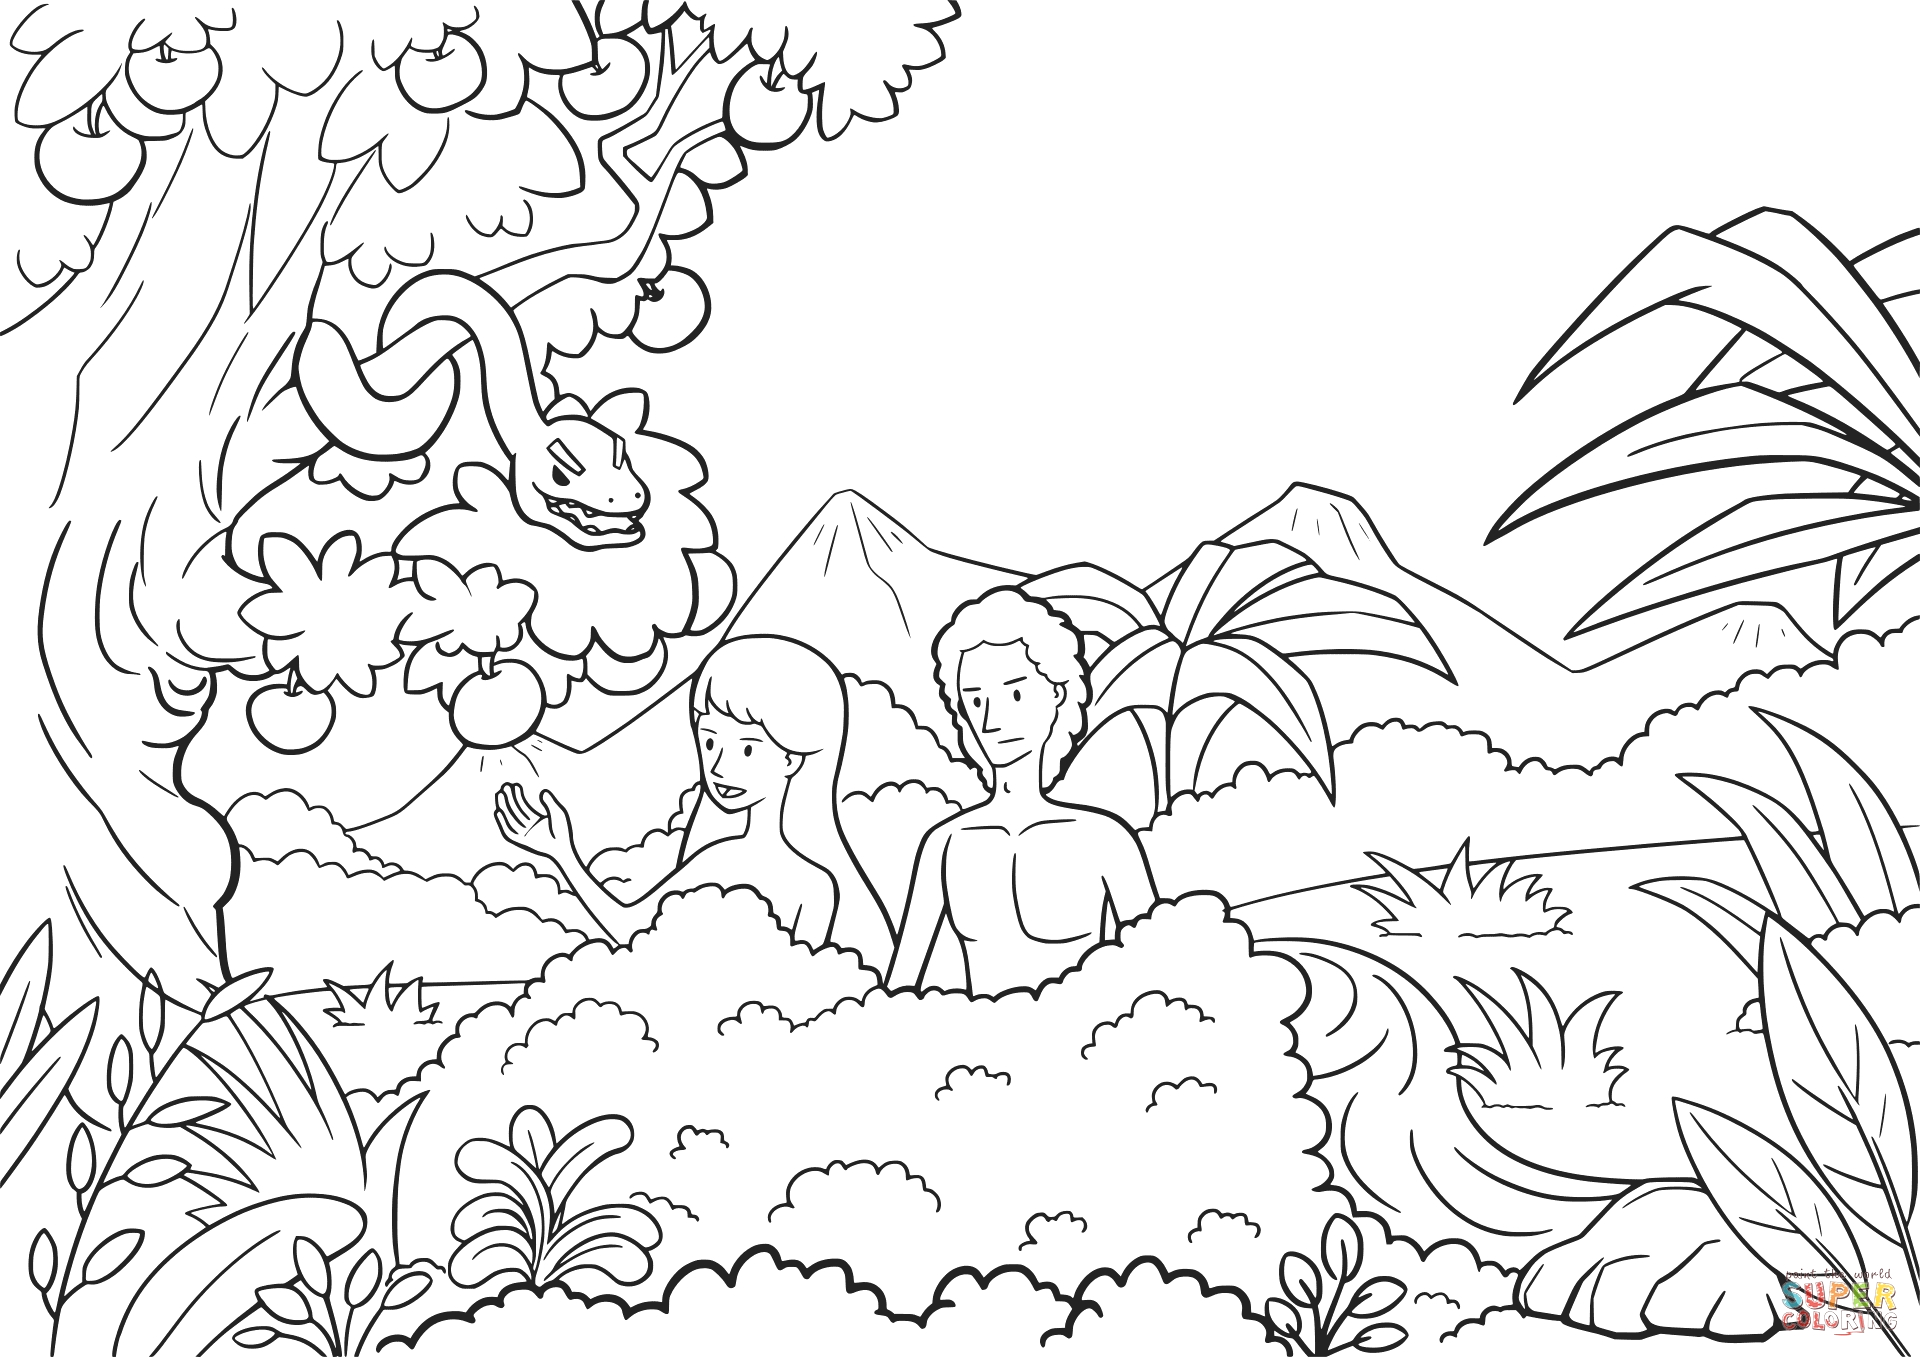 Garden Of Eden Coloring Pages Free Printable Garden Eden Coloring Pages at Getcolorings